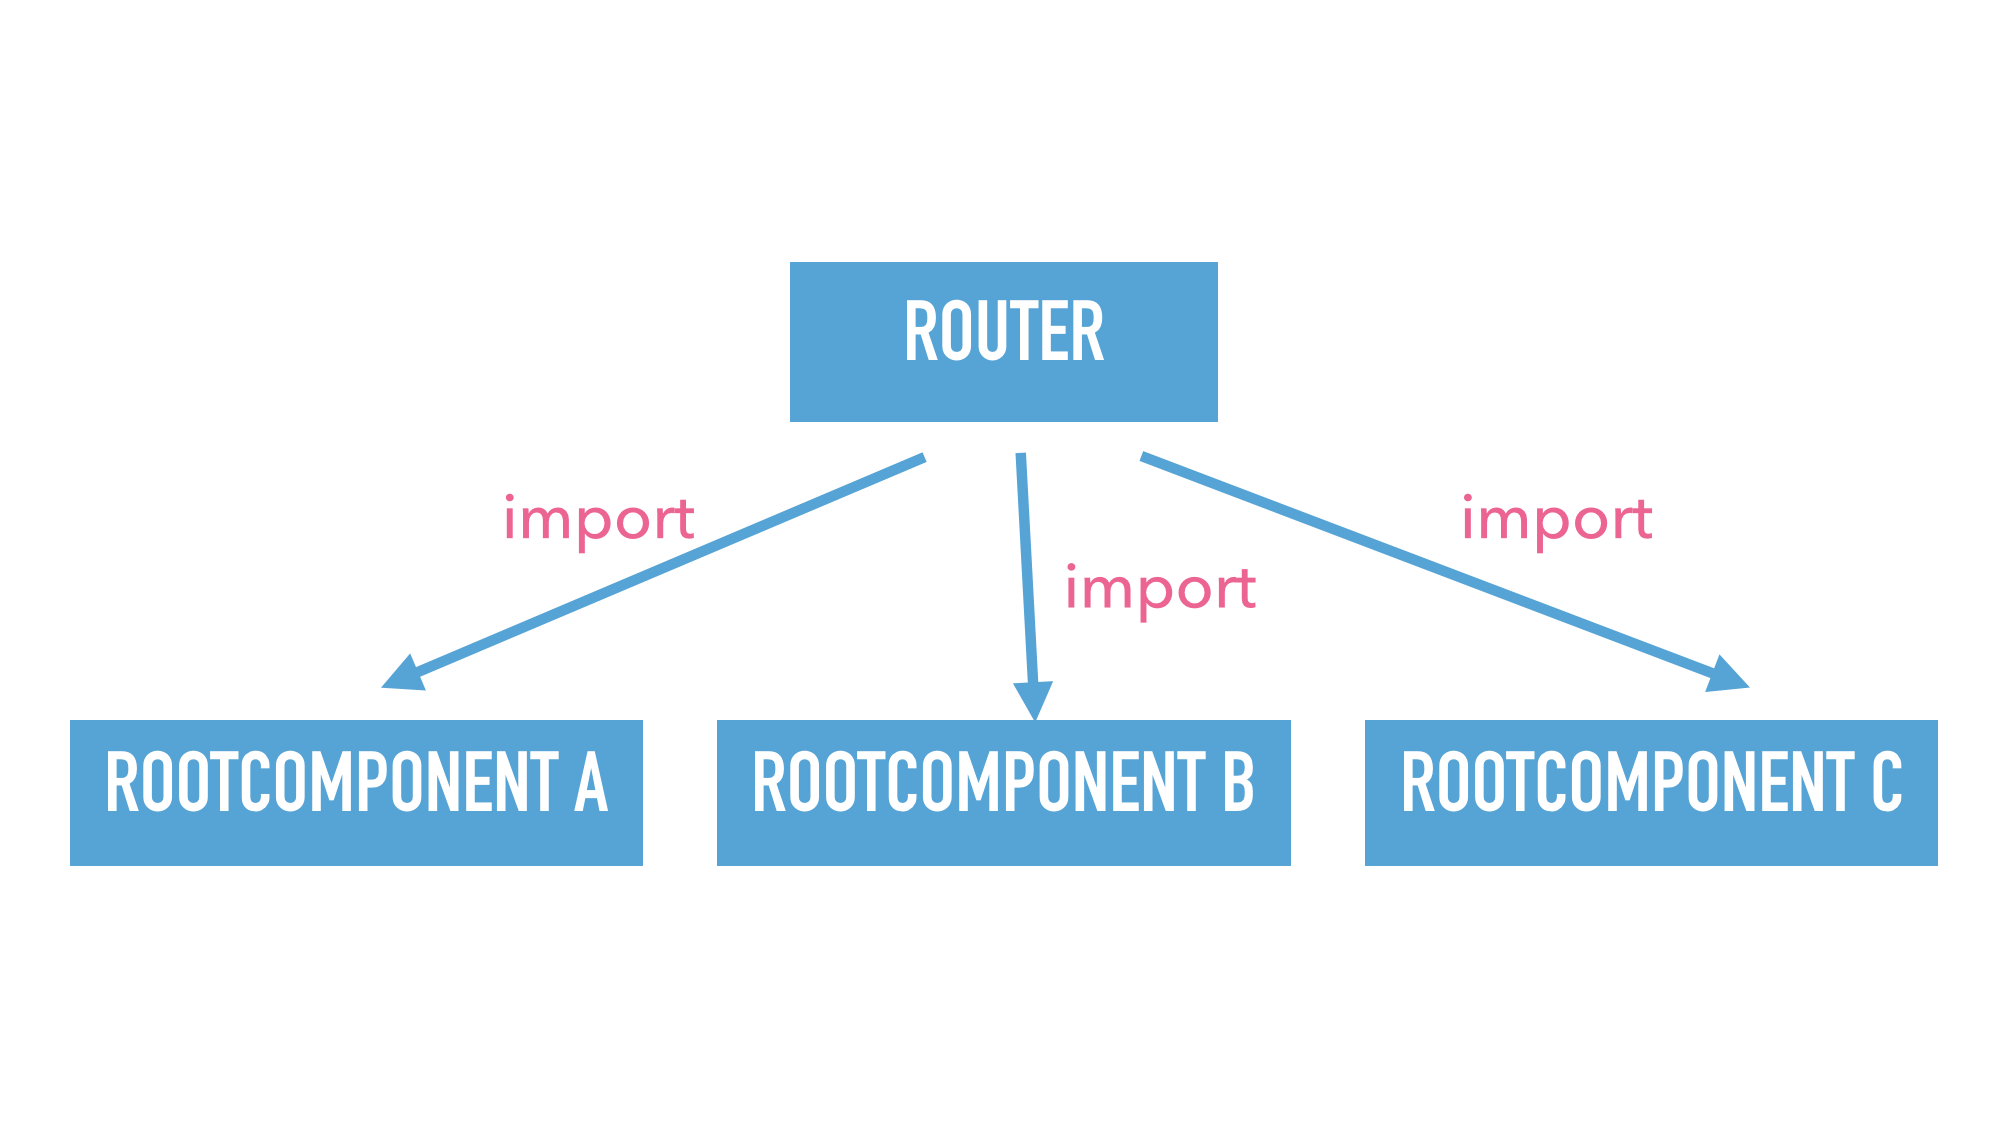 Slide text: Example dependency tree with router and 3 root components. Router imports root components.